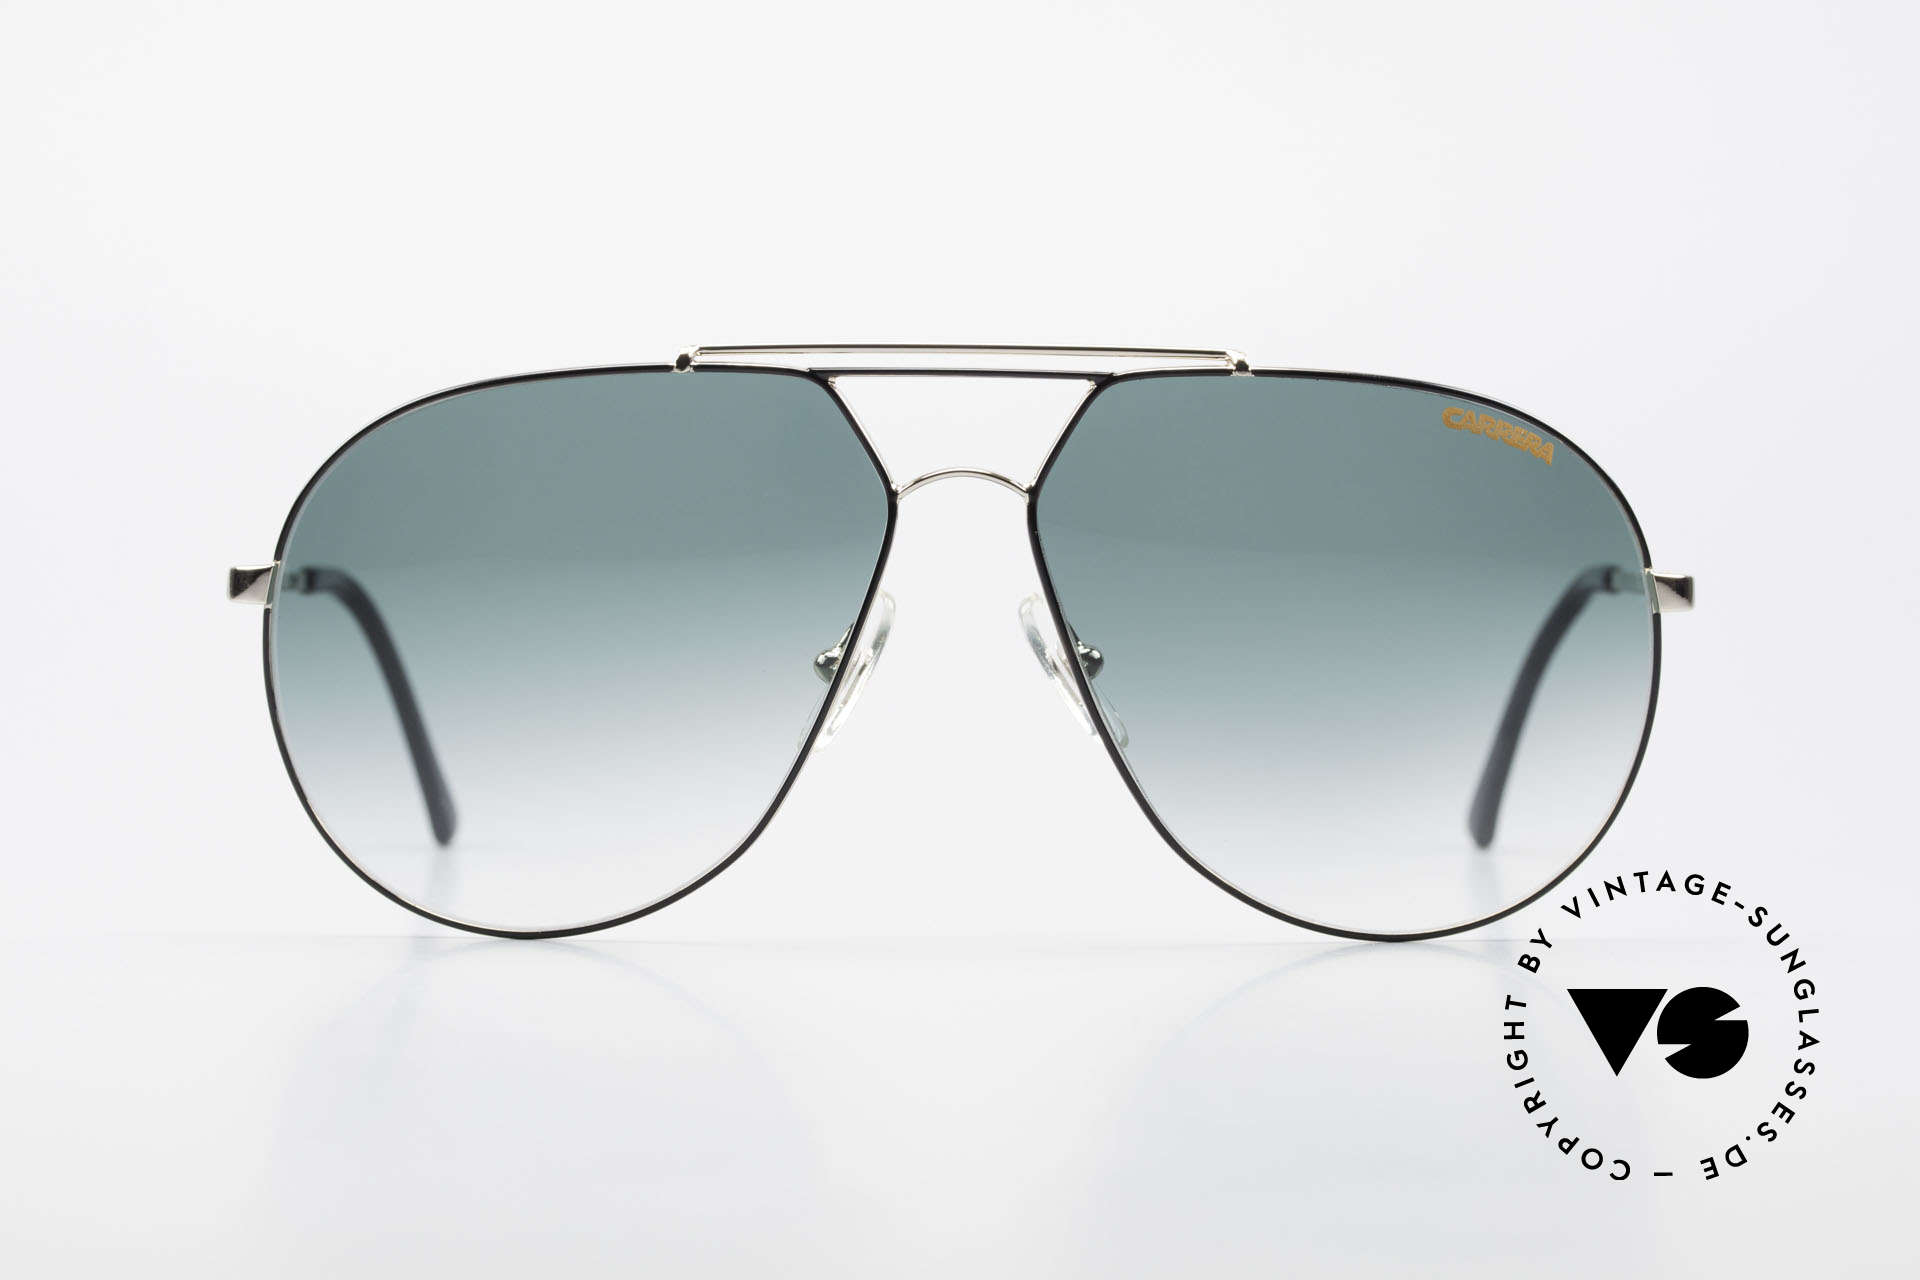 Carrera 5421 90's Aviator Sports Sunglasses, typified the sports and luxury lifestyle by CARRERA, Made for Men